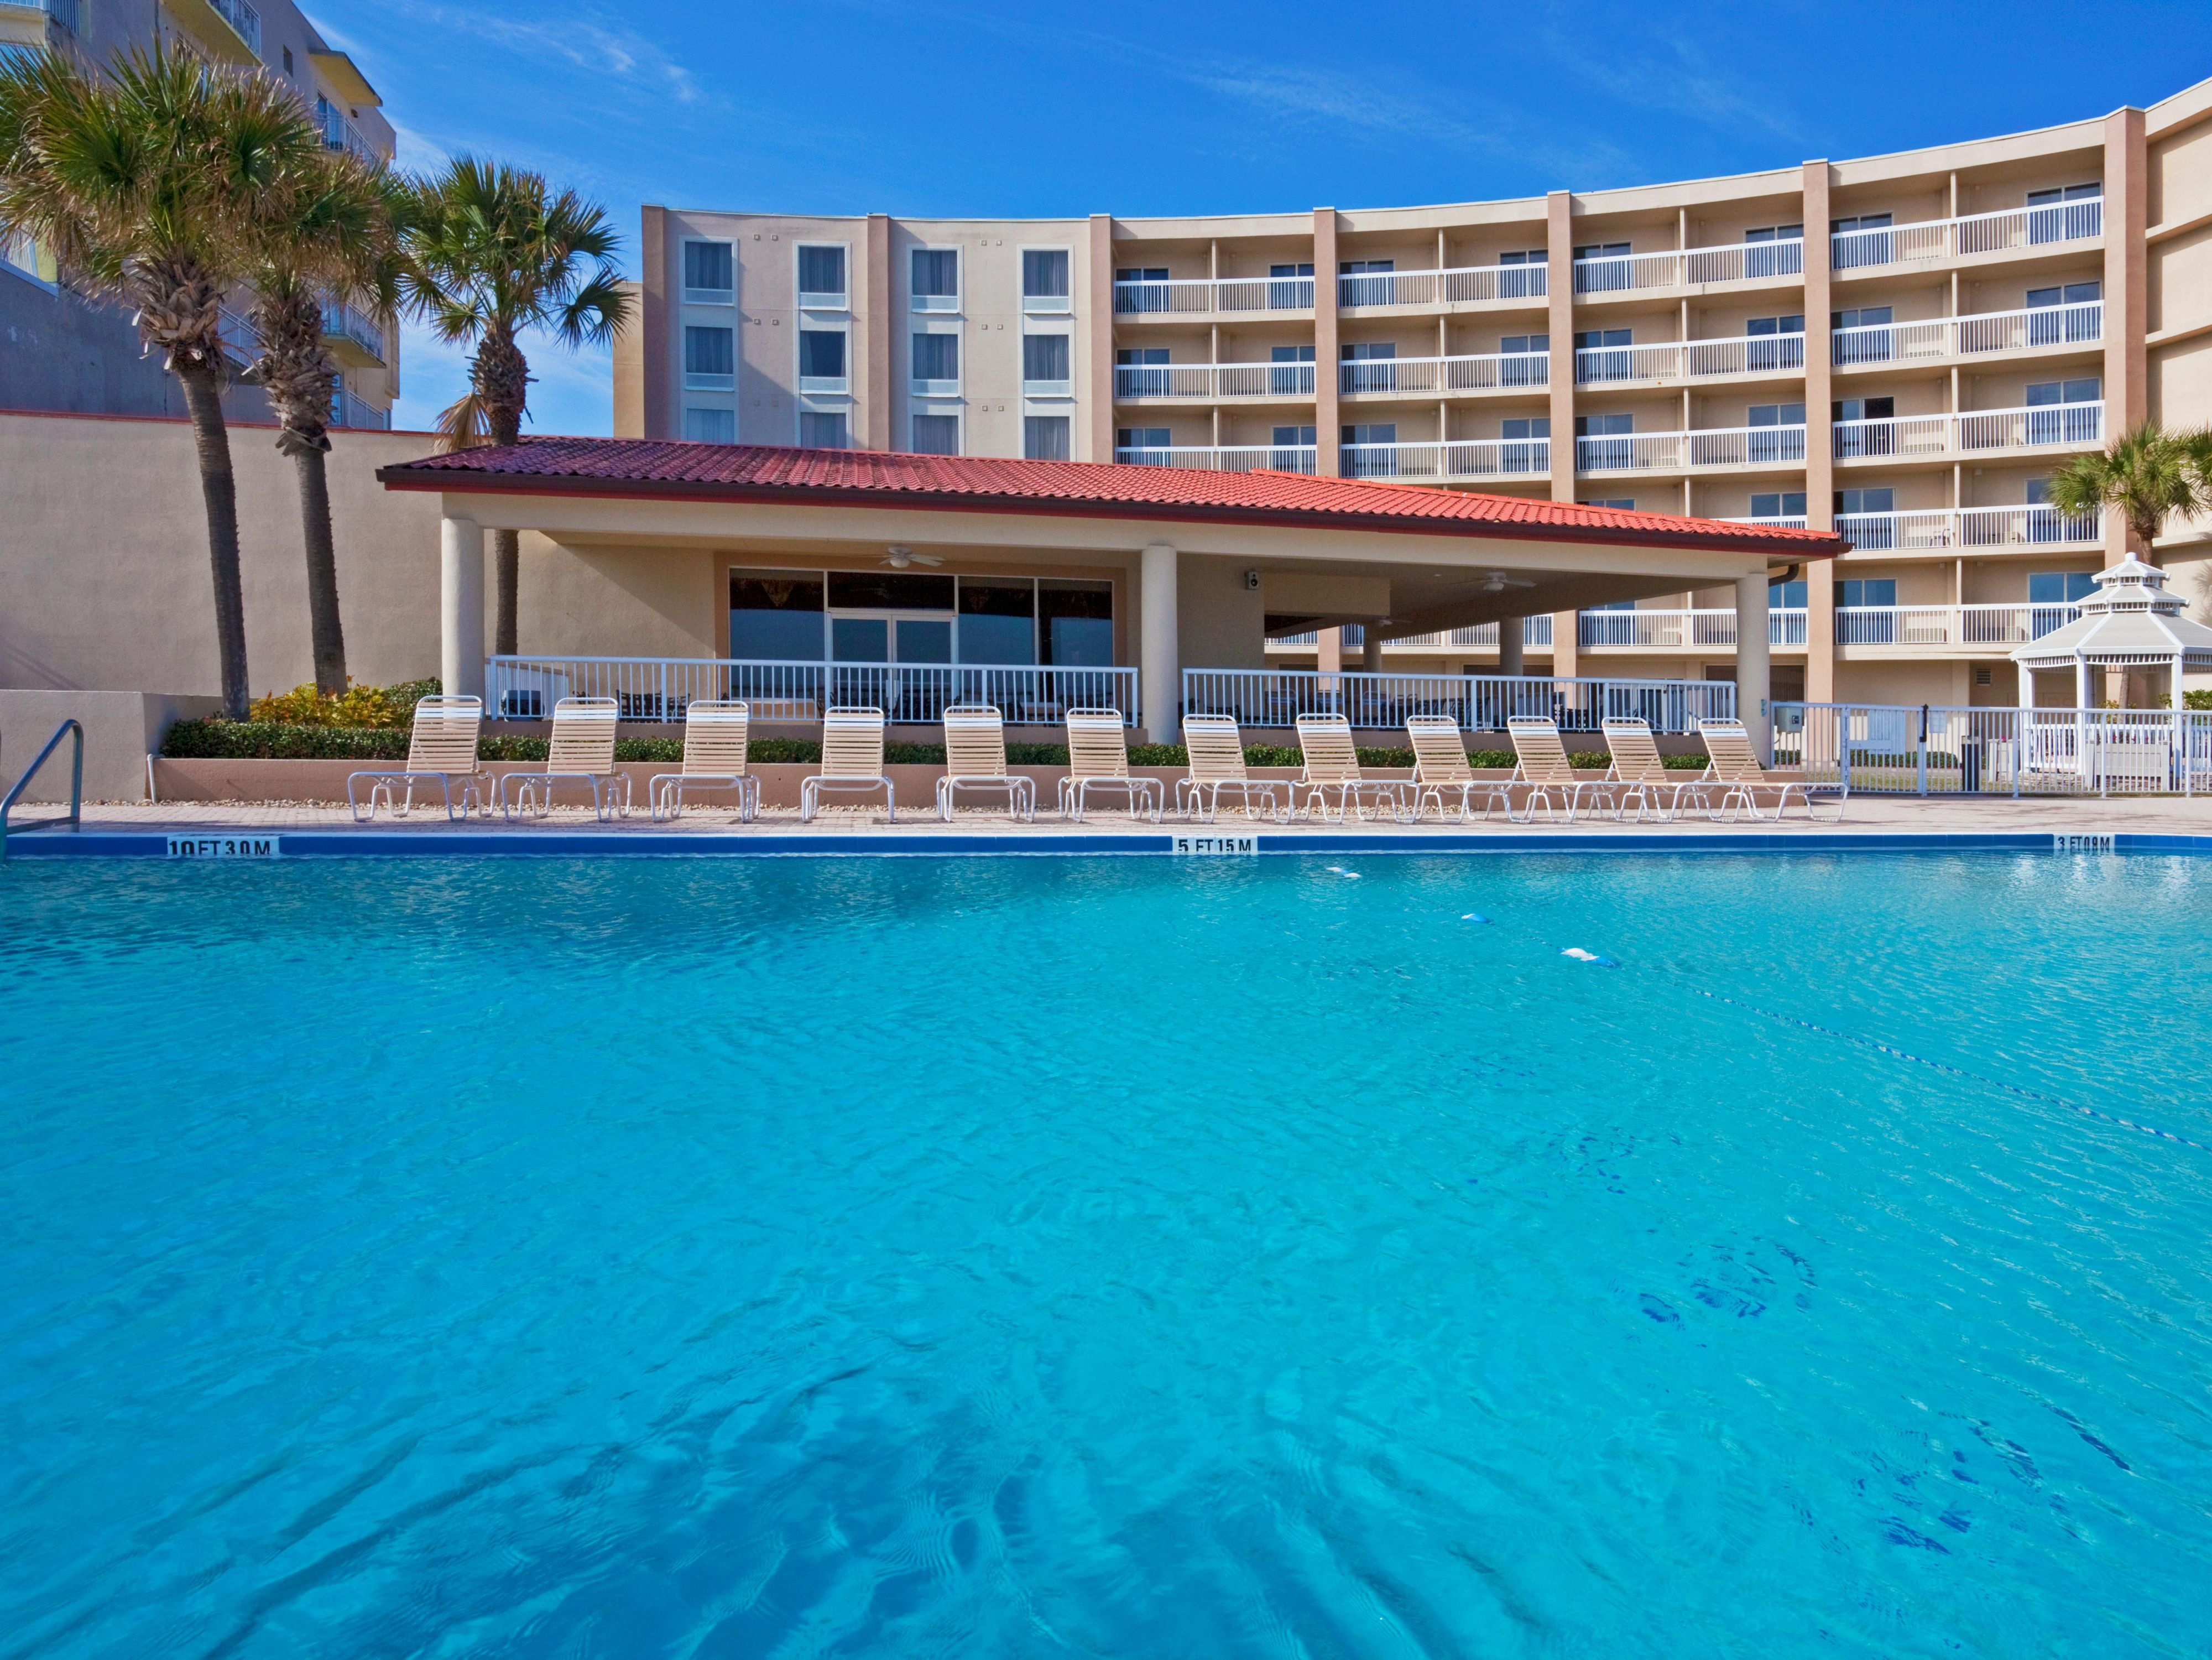 Hotel Suites In Daytona Beach Fl